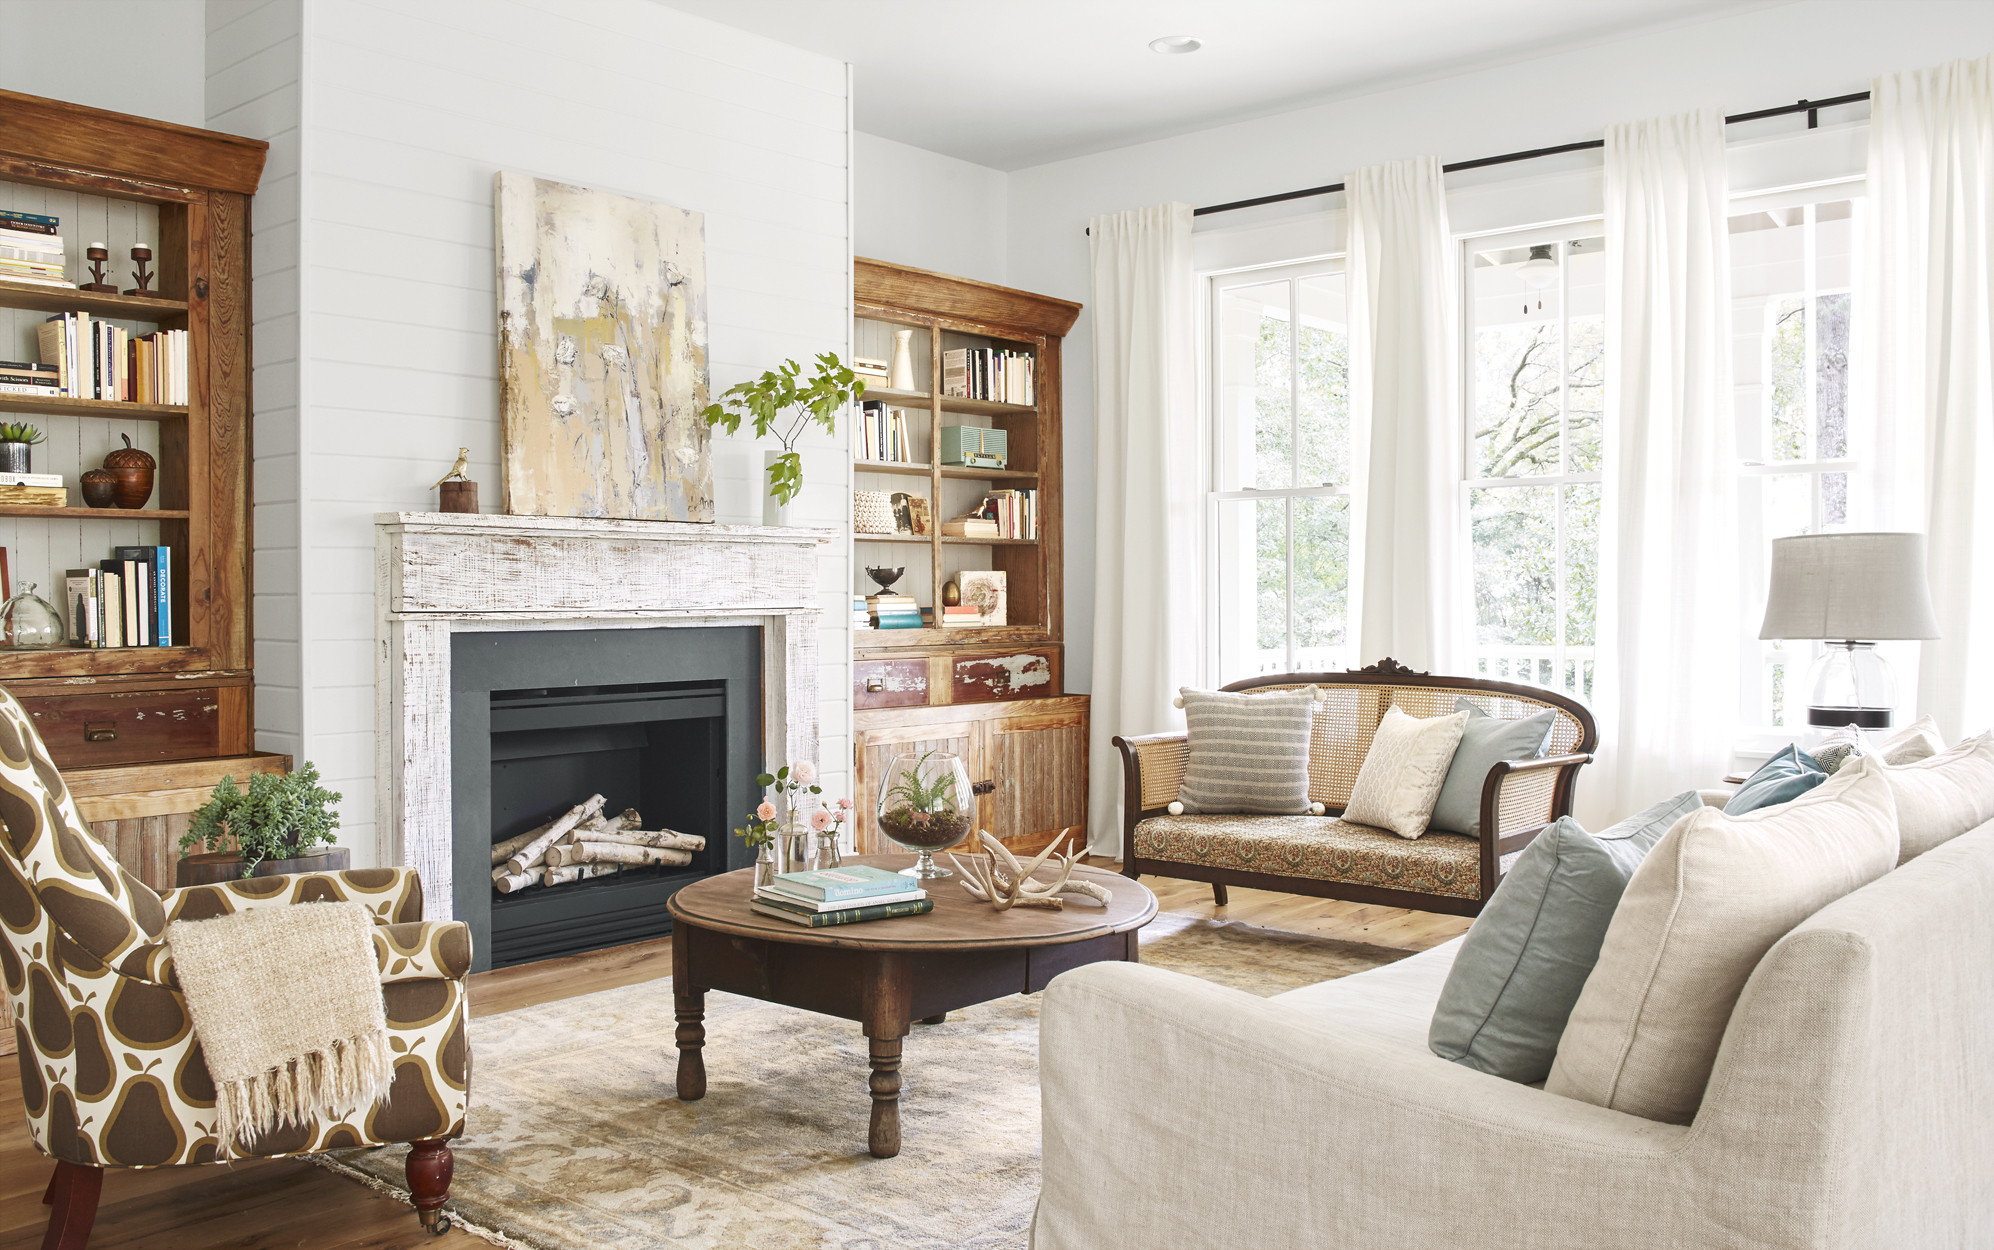 Best ideas about Country Living Room . Save or Pin Lauren Crouch Georgia Farmhouse Southern Farmhouse Now.